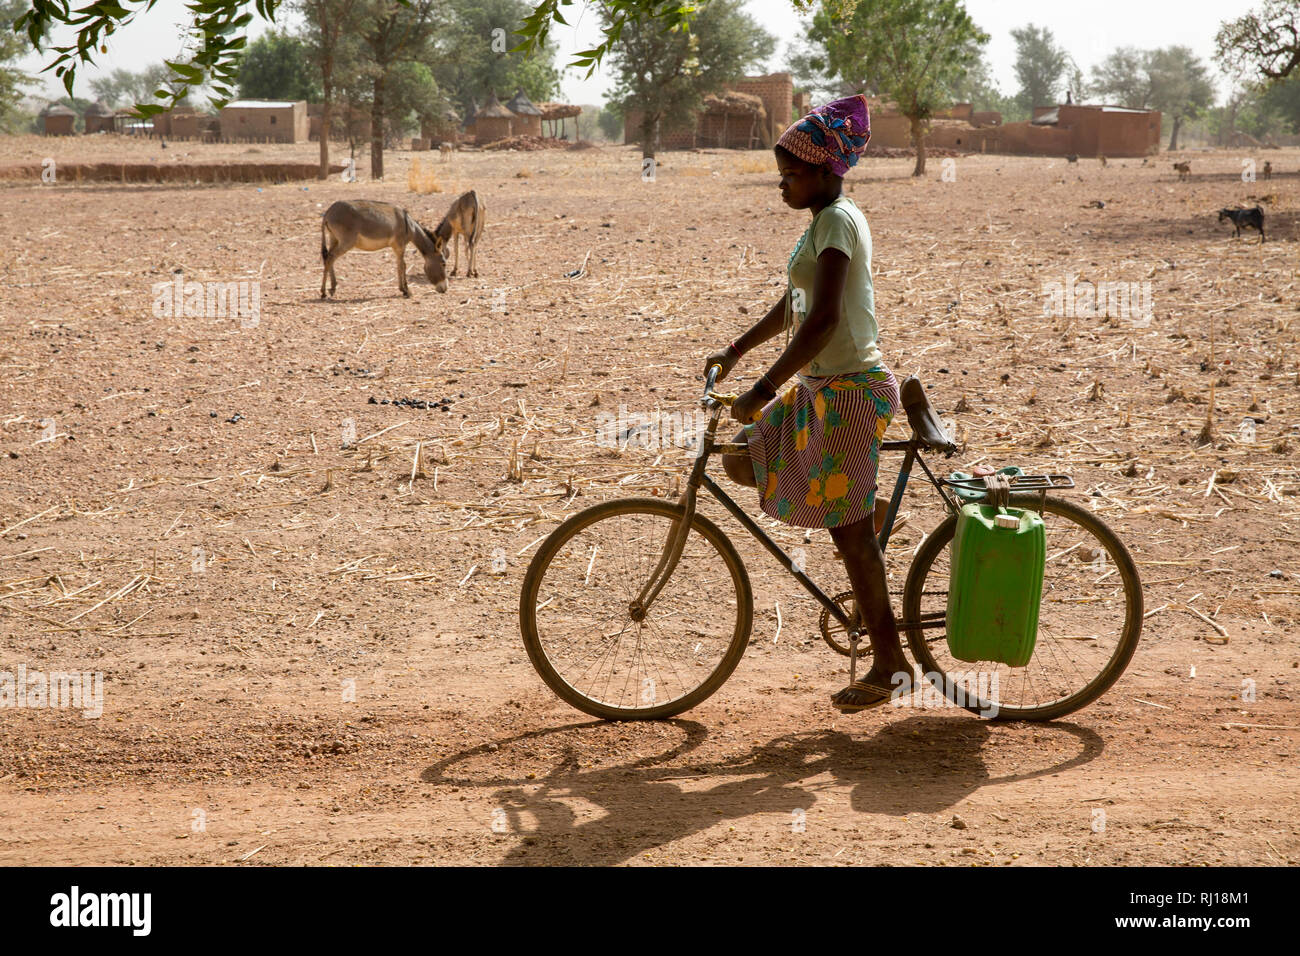 Samba village, Yako Province, Burkina Faso: A teenage girl transports two canisters of water from the well to her home on her bike. Stock Photo